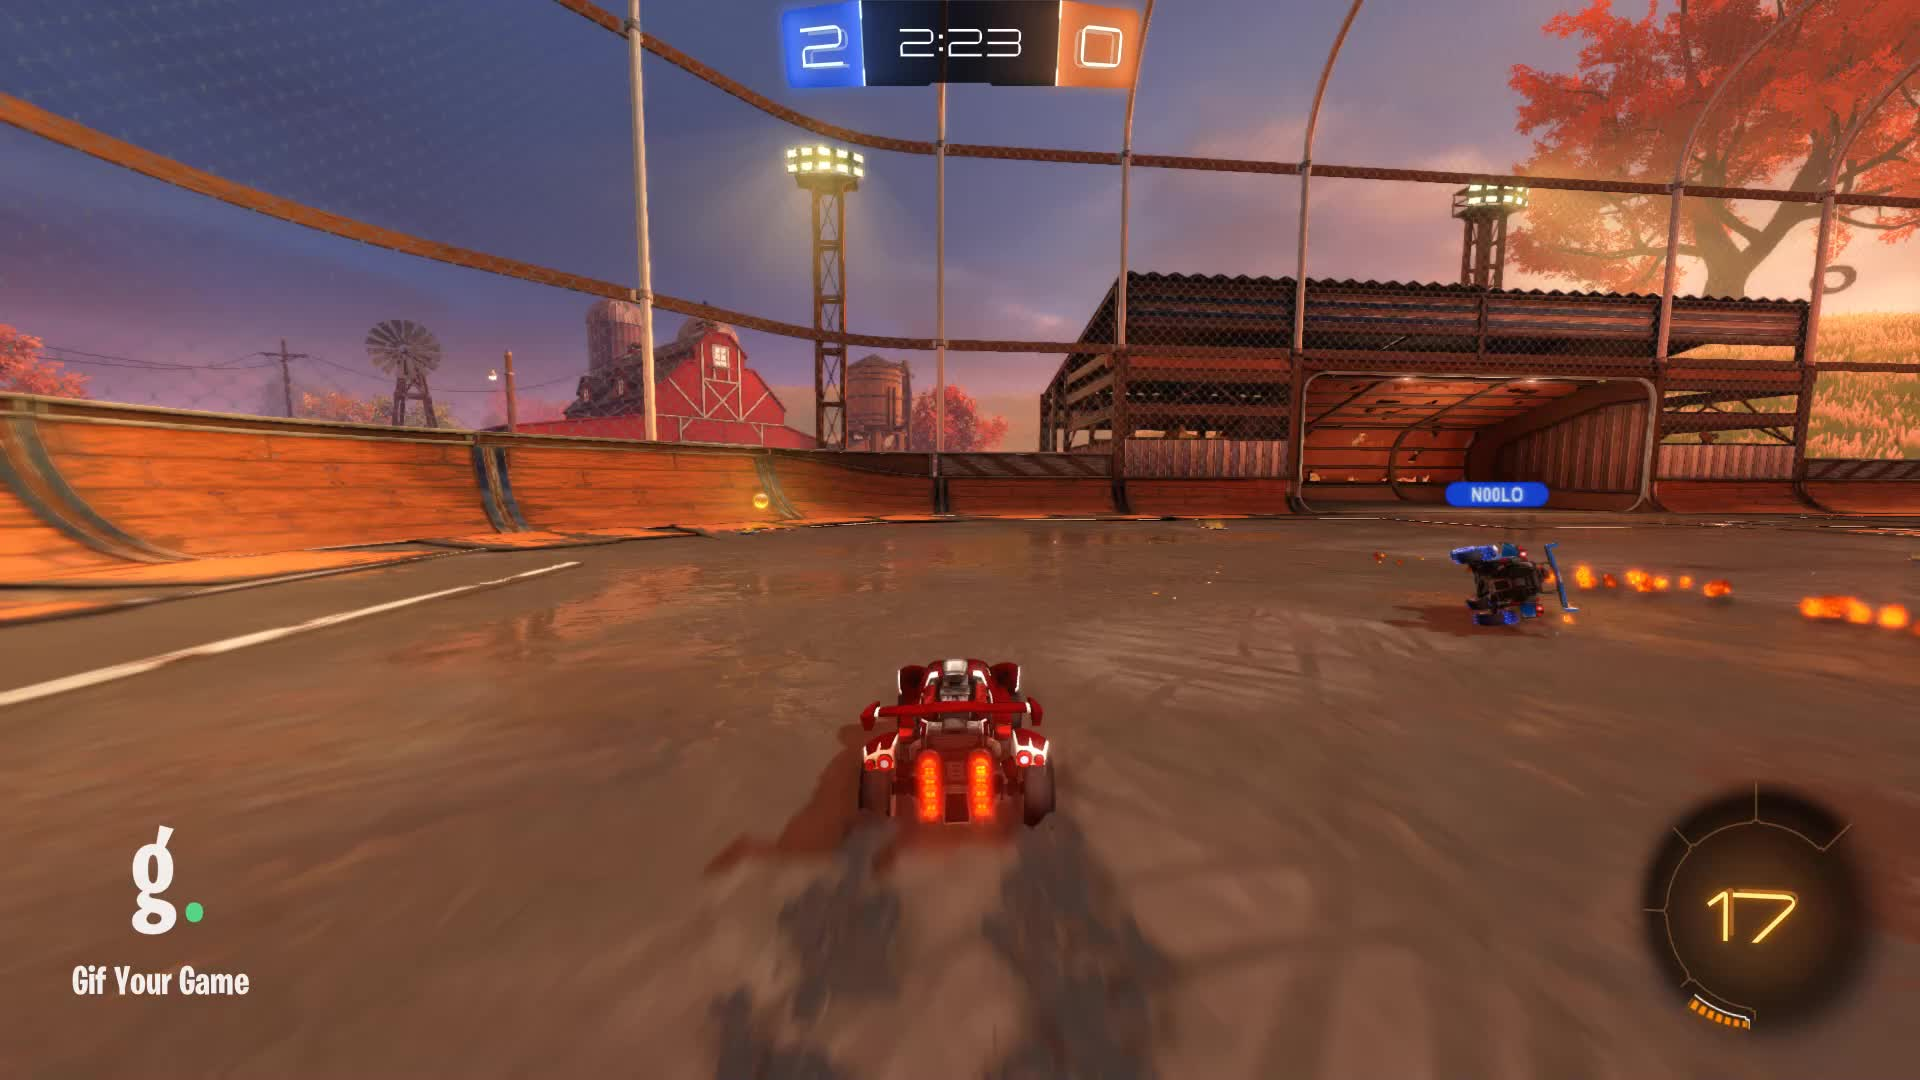 Gif Your Game, GifYourGame, Goal, Horizon, Rocket League, RocketLeague, Goal 3: Horizon GIFs